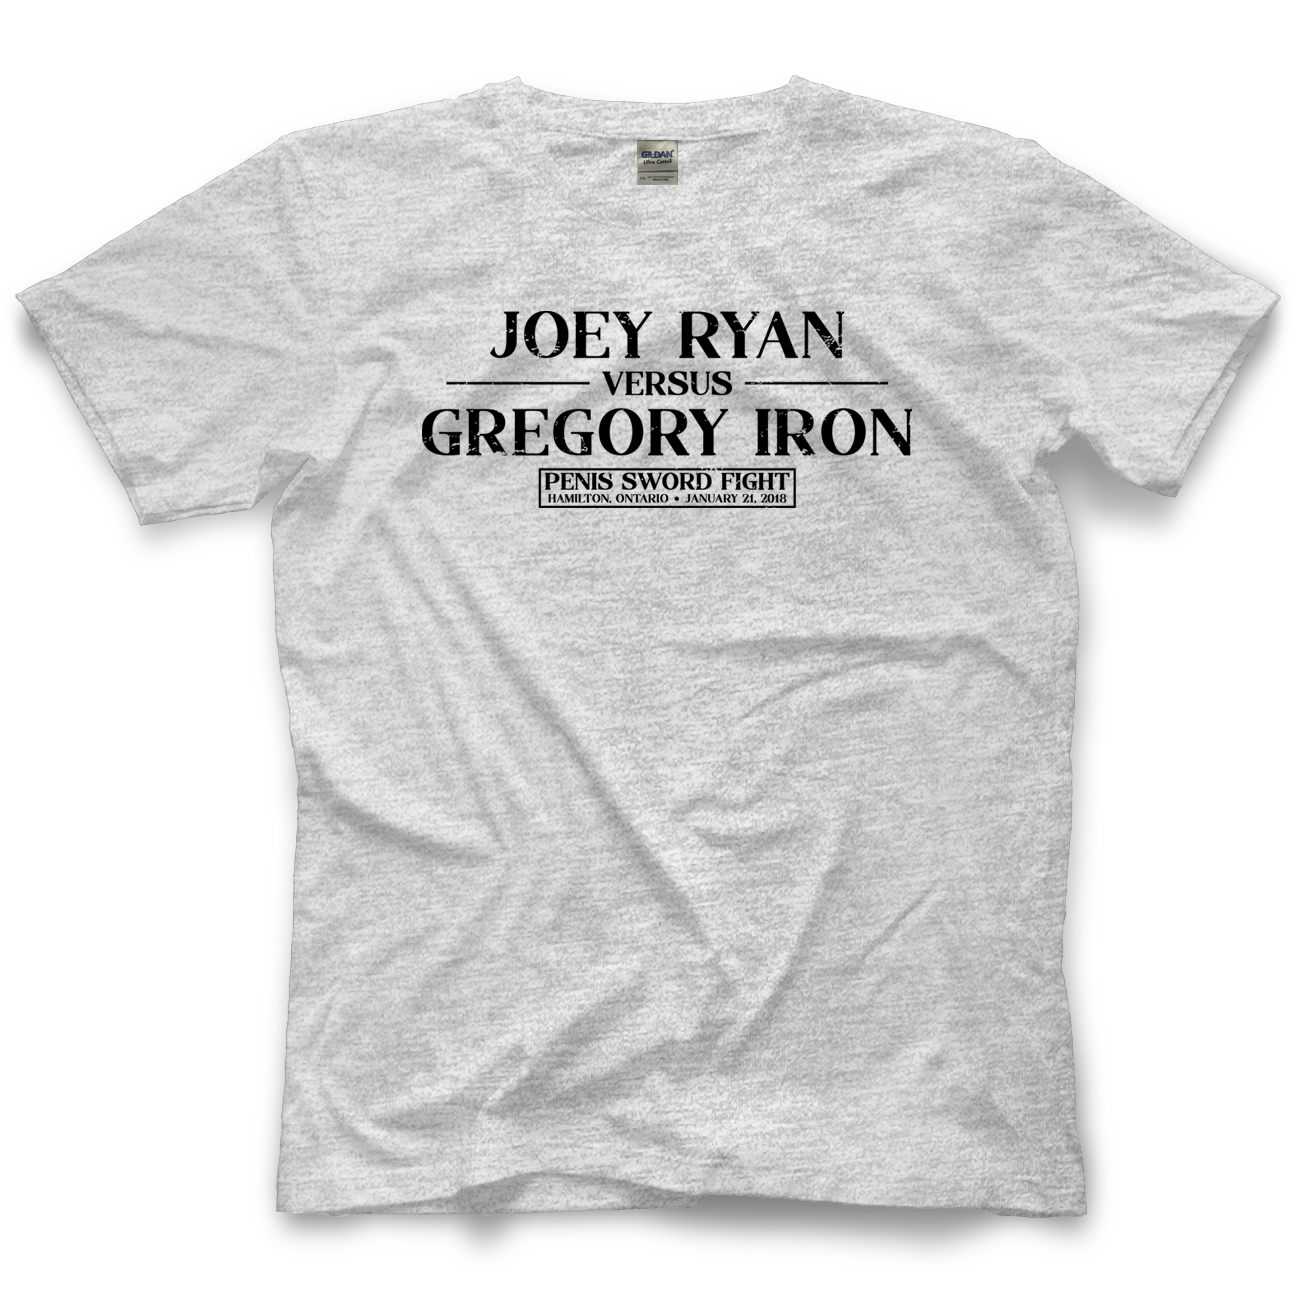 Joey Ryan vs. Gregory Iron